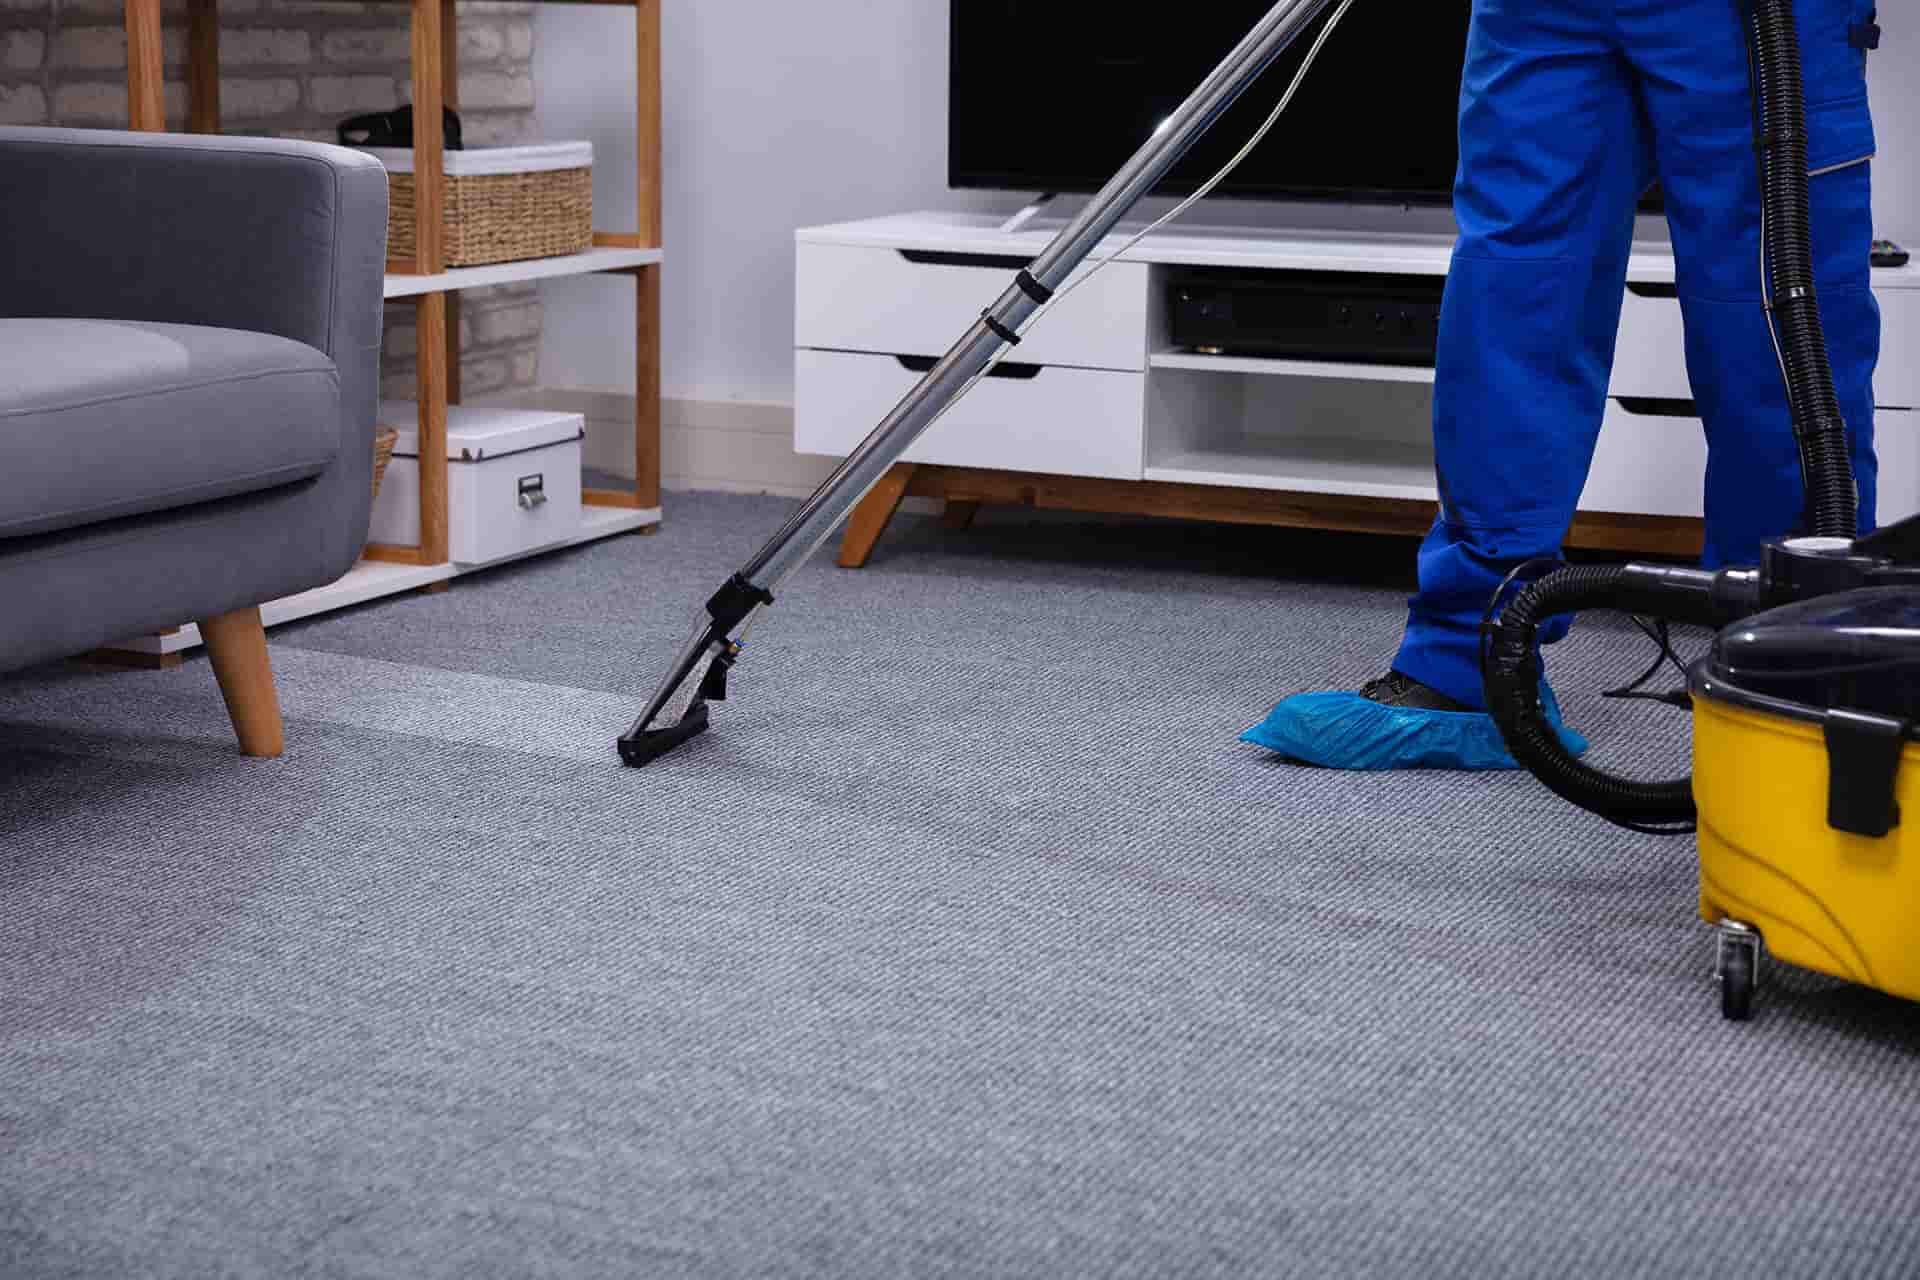 Carpet Cleaning, Rug Cleaning, Soft Furnishings Cleaning